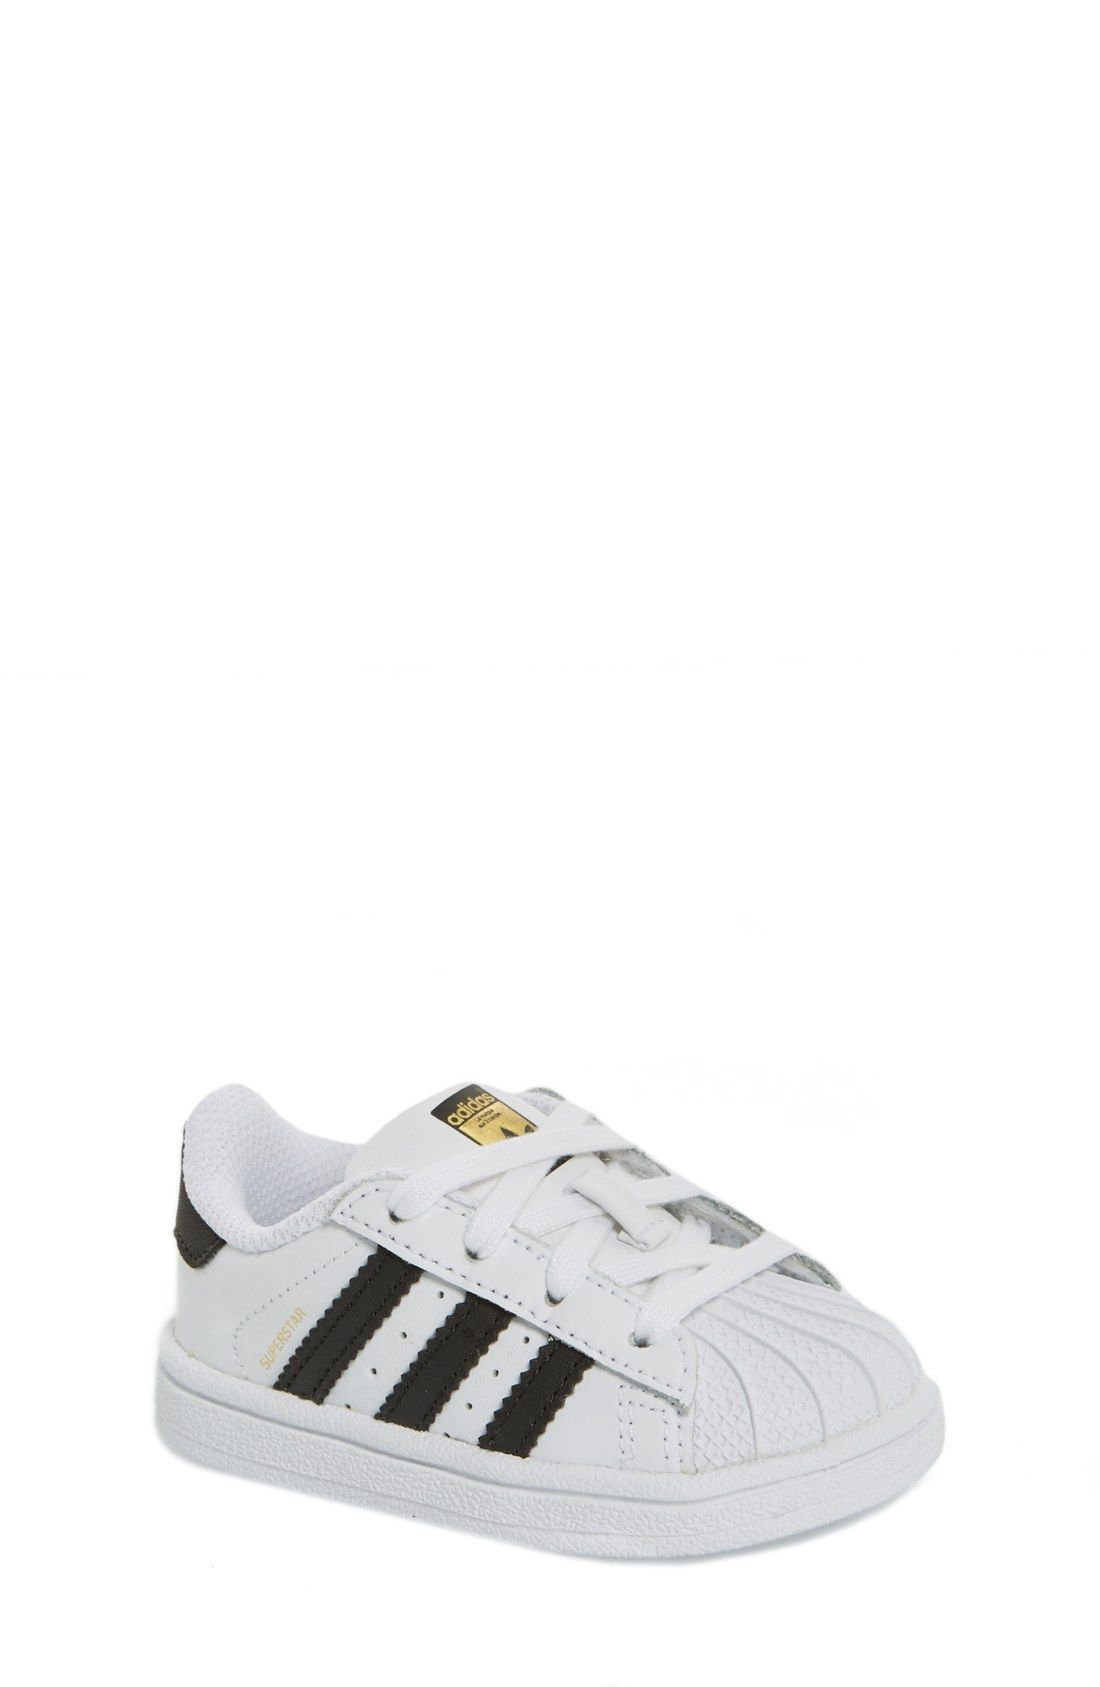 adidas adidas \u0027Superstar\u0027 Sneaker (Baby, Walker \u0026 Toddler) available at